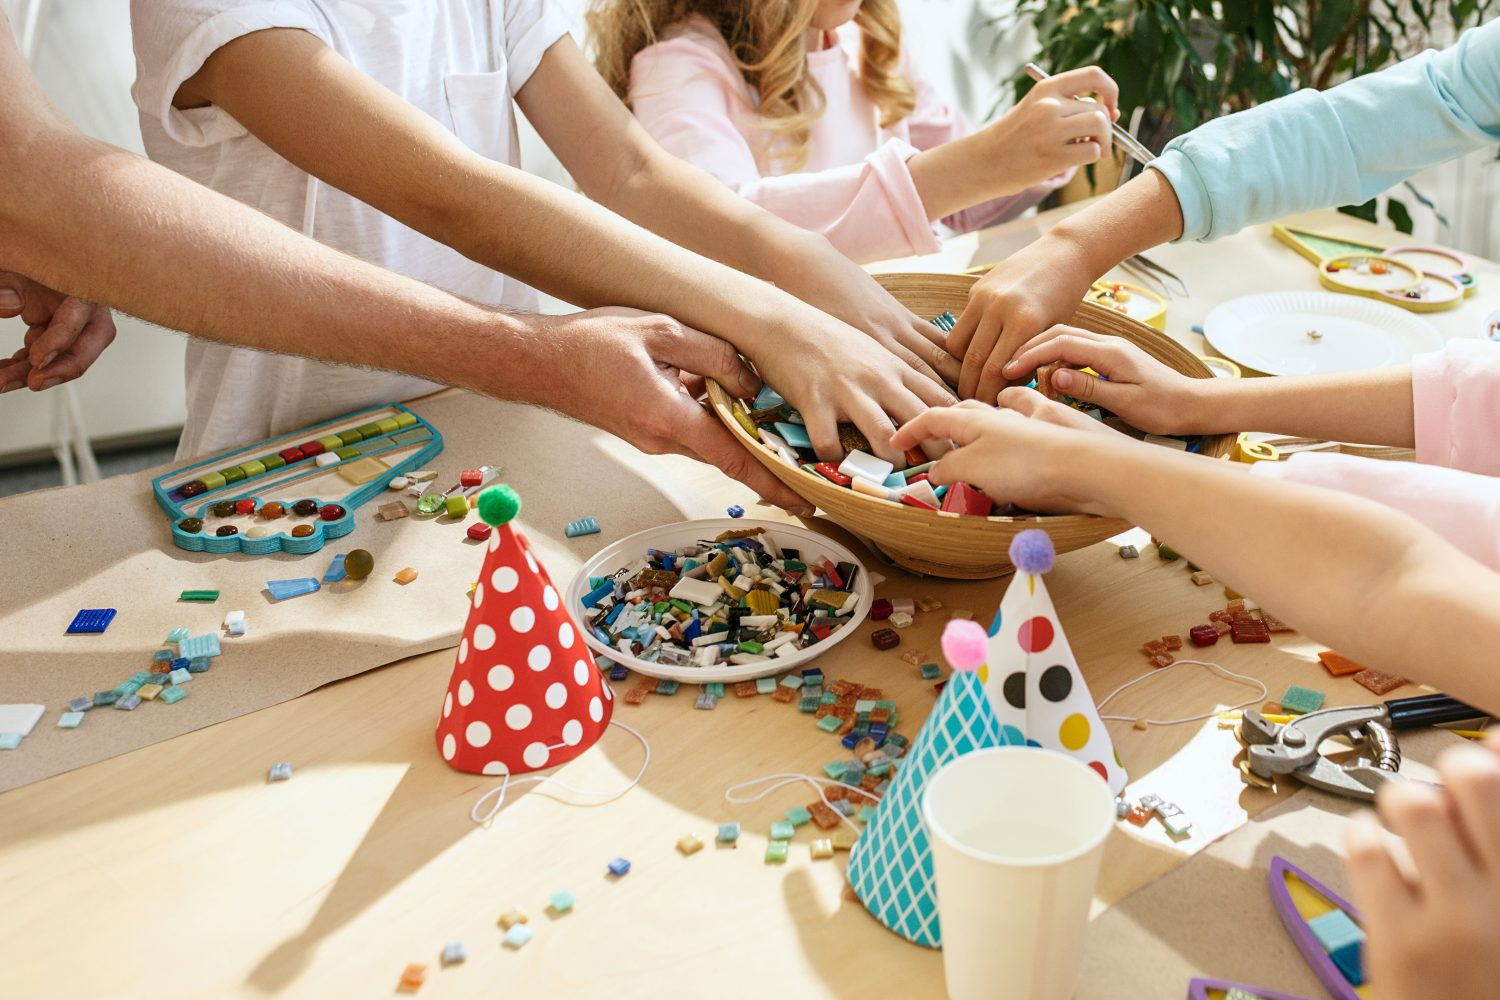 Kids interact in a mosaic puzzle arts and crafts activity during a birthday party